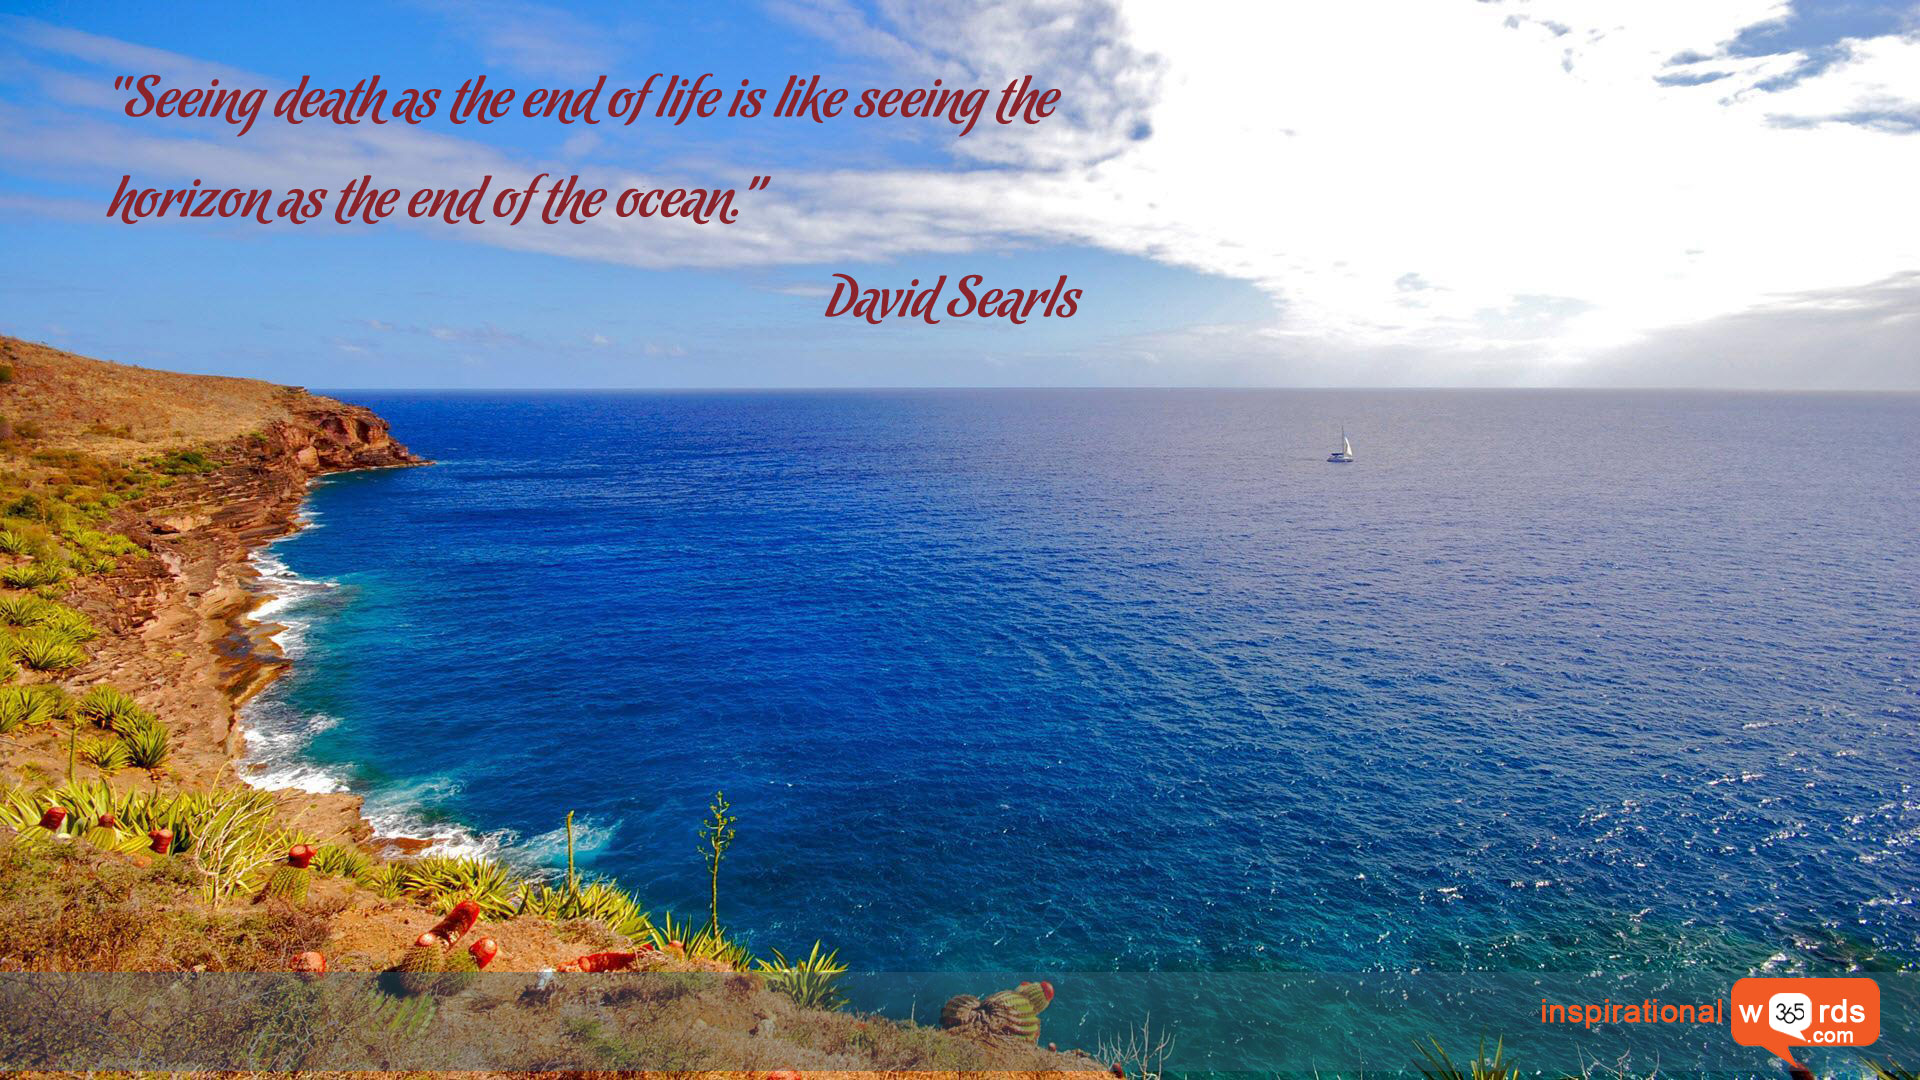 Inspirational Wallpaper Quote by David Searls